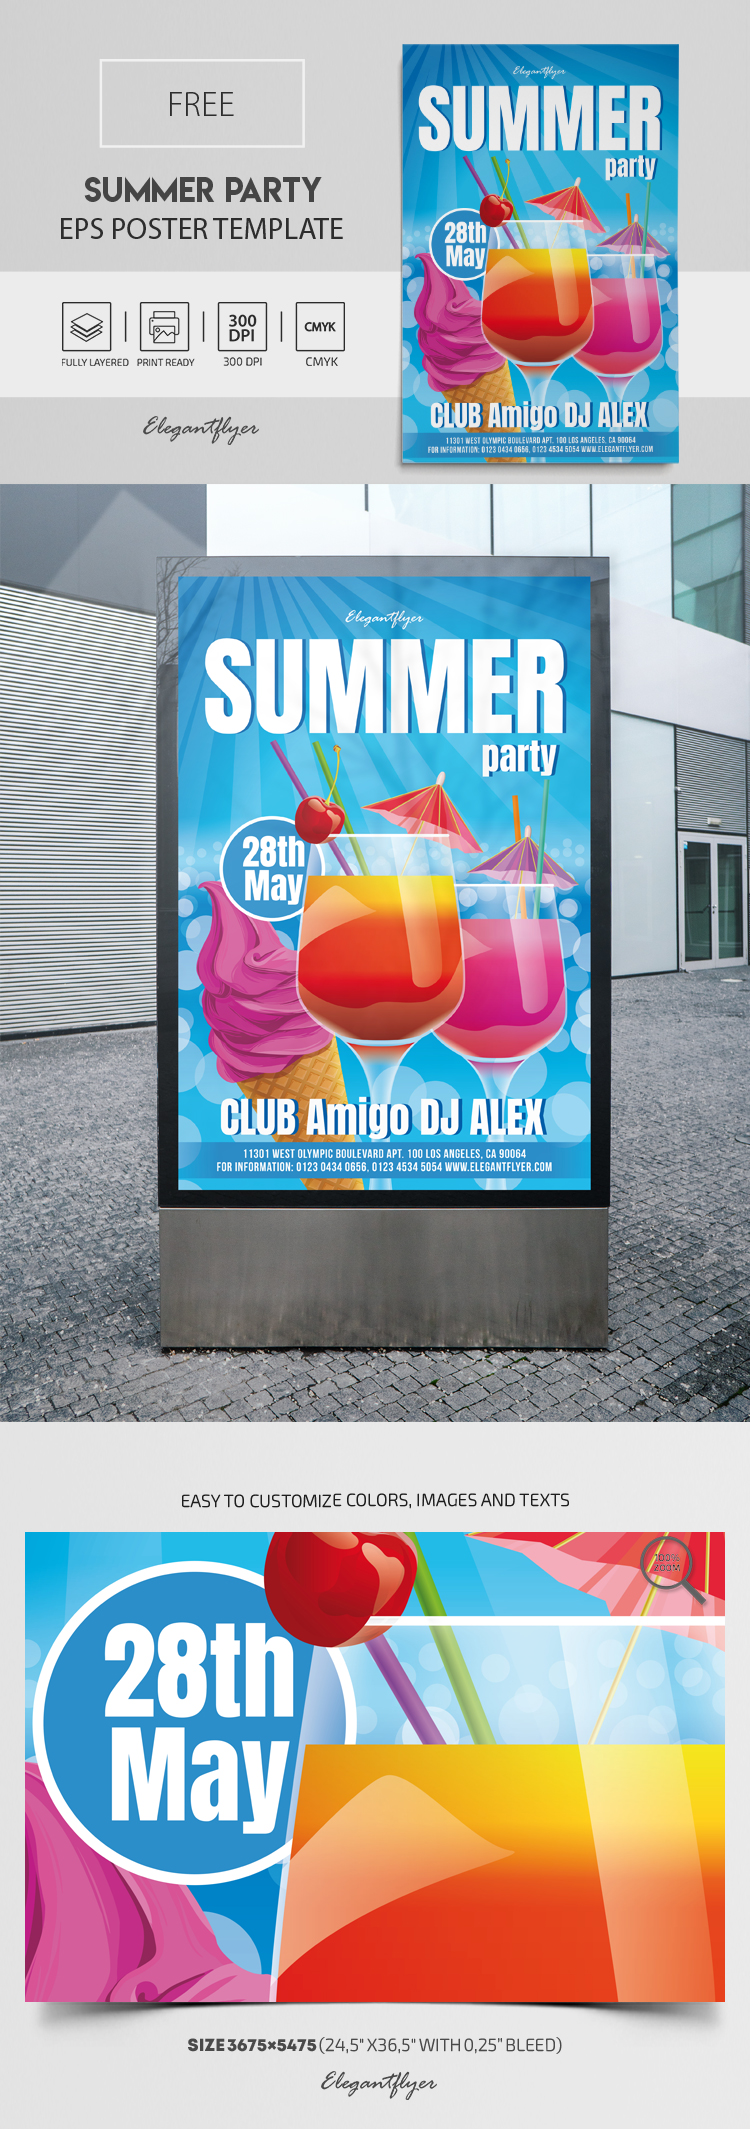 Summer Party – Free Vector Poster EPS Template